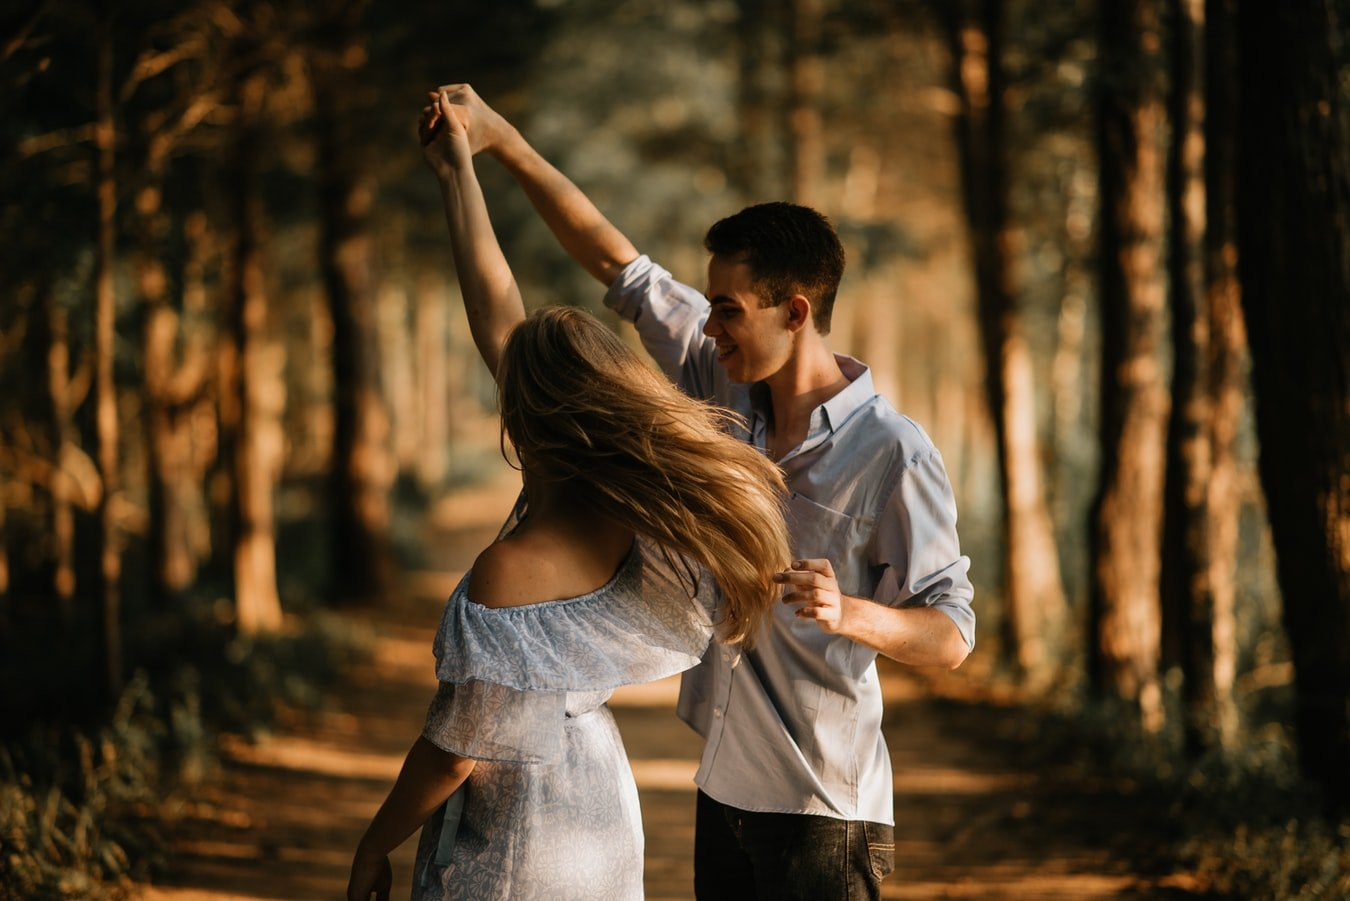 Young couple falling in love | Source: Unsplash